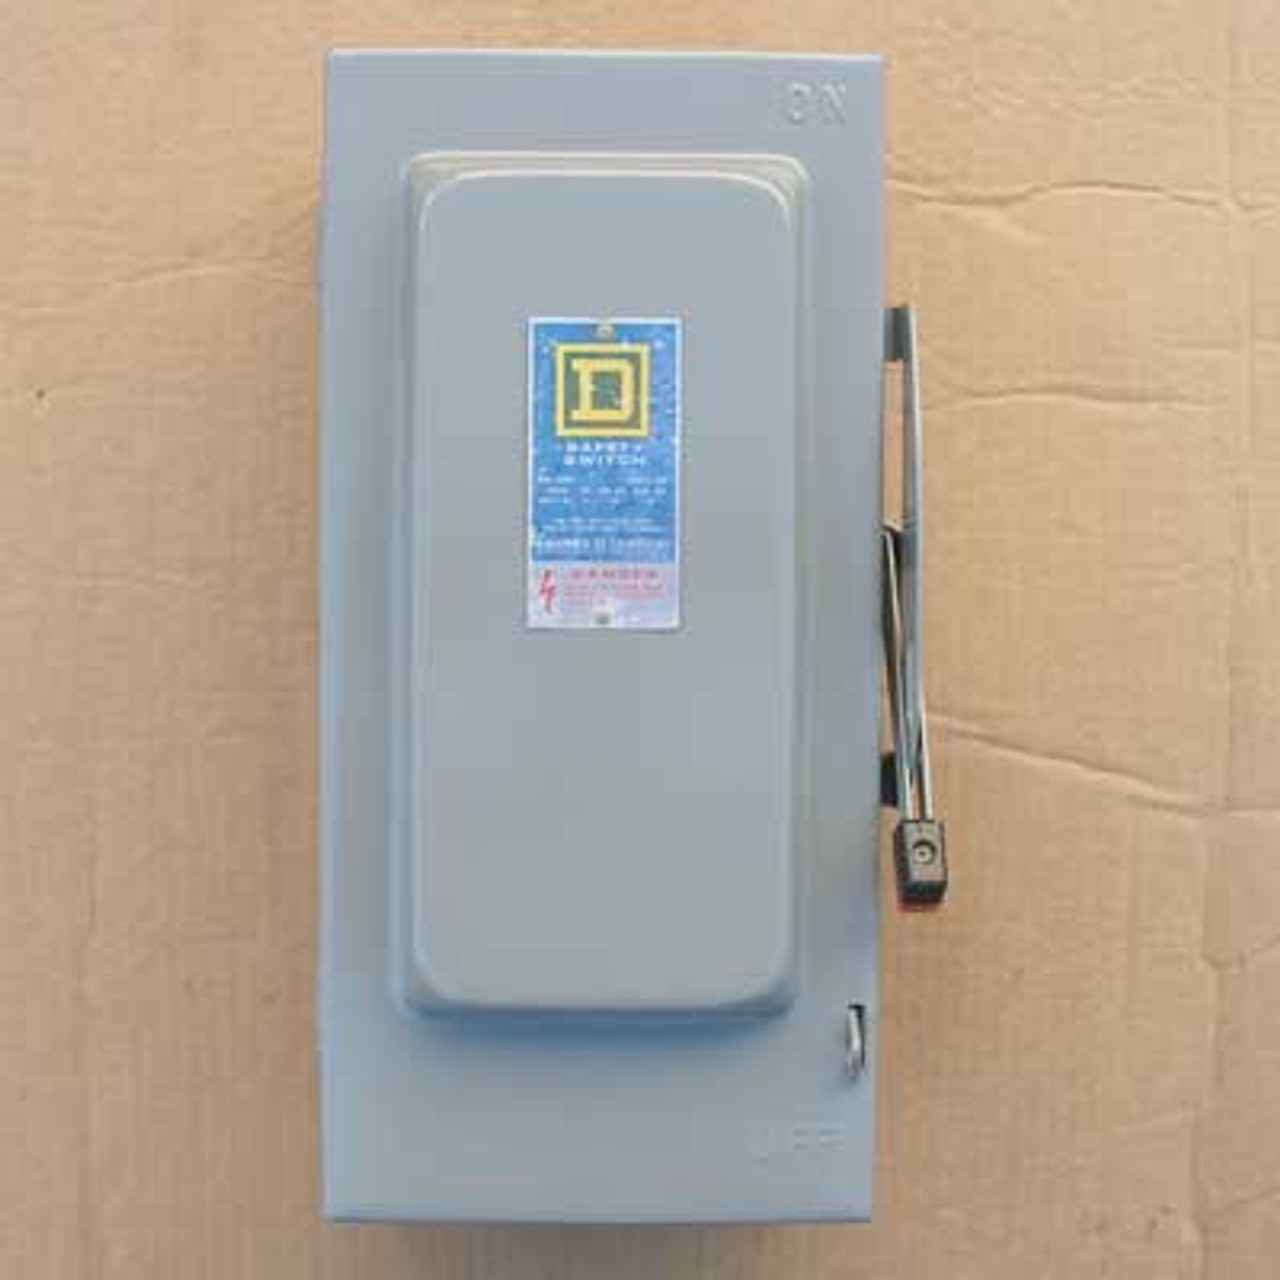 Square D H322-N 60 Amp 240VAC Fusible Safety Switch Nema 1 - Used Reconditioned